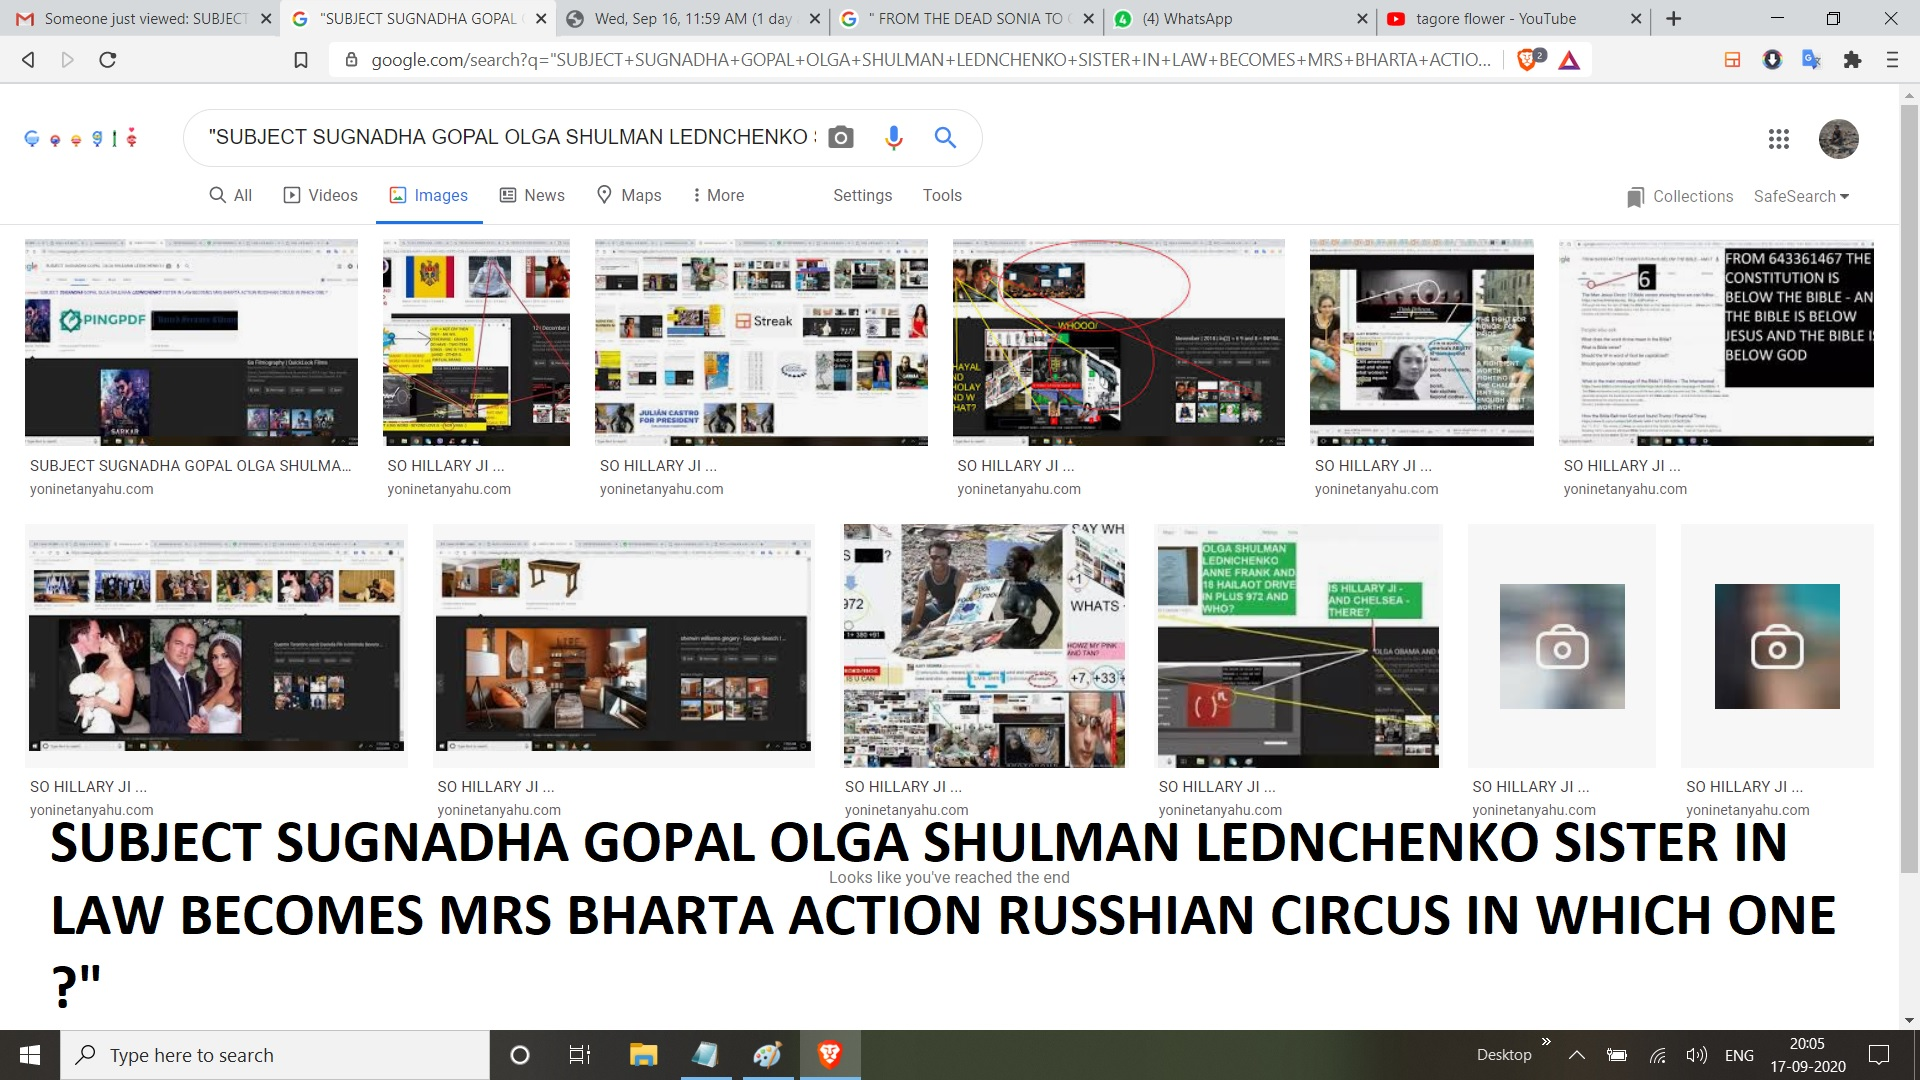 SUBJECT SUGNADHA GOPAL OLGA SHULMAN LEDNCHENKO SISTER IN LAW BECOMES MRS BHARTA ACTION RUSSHIAN CIRCUS IN WHICH ONE